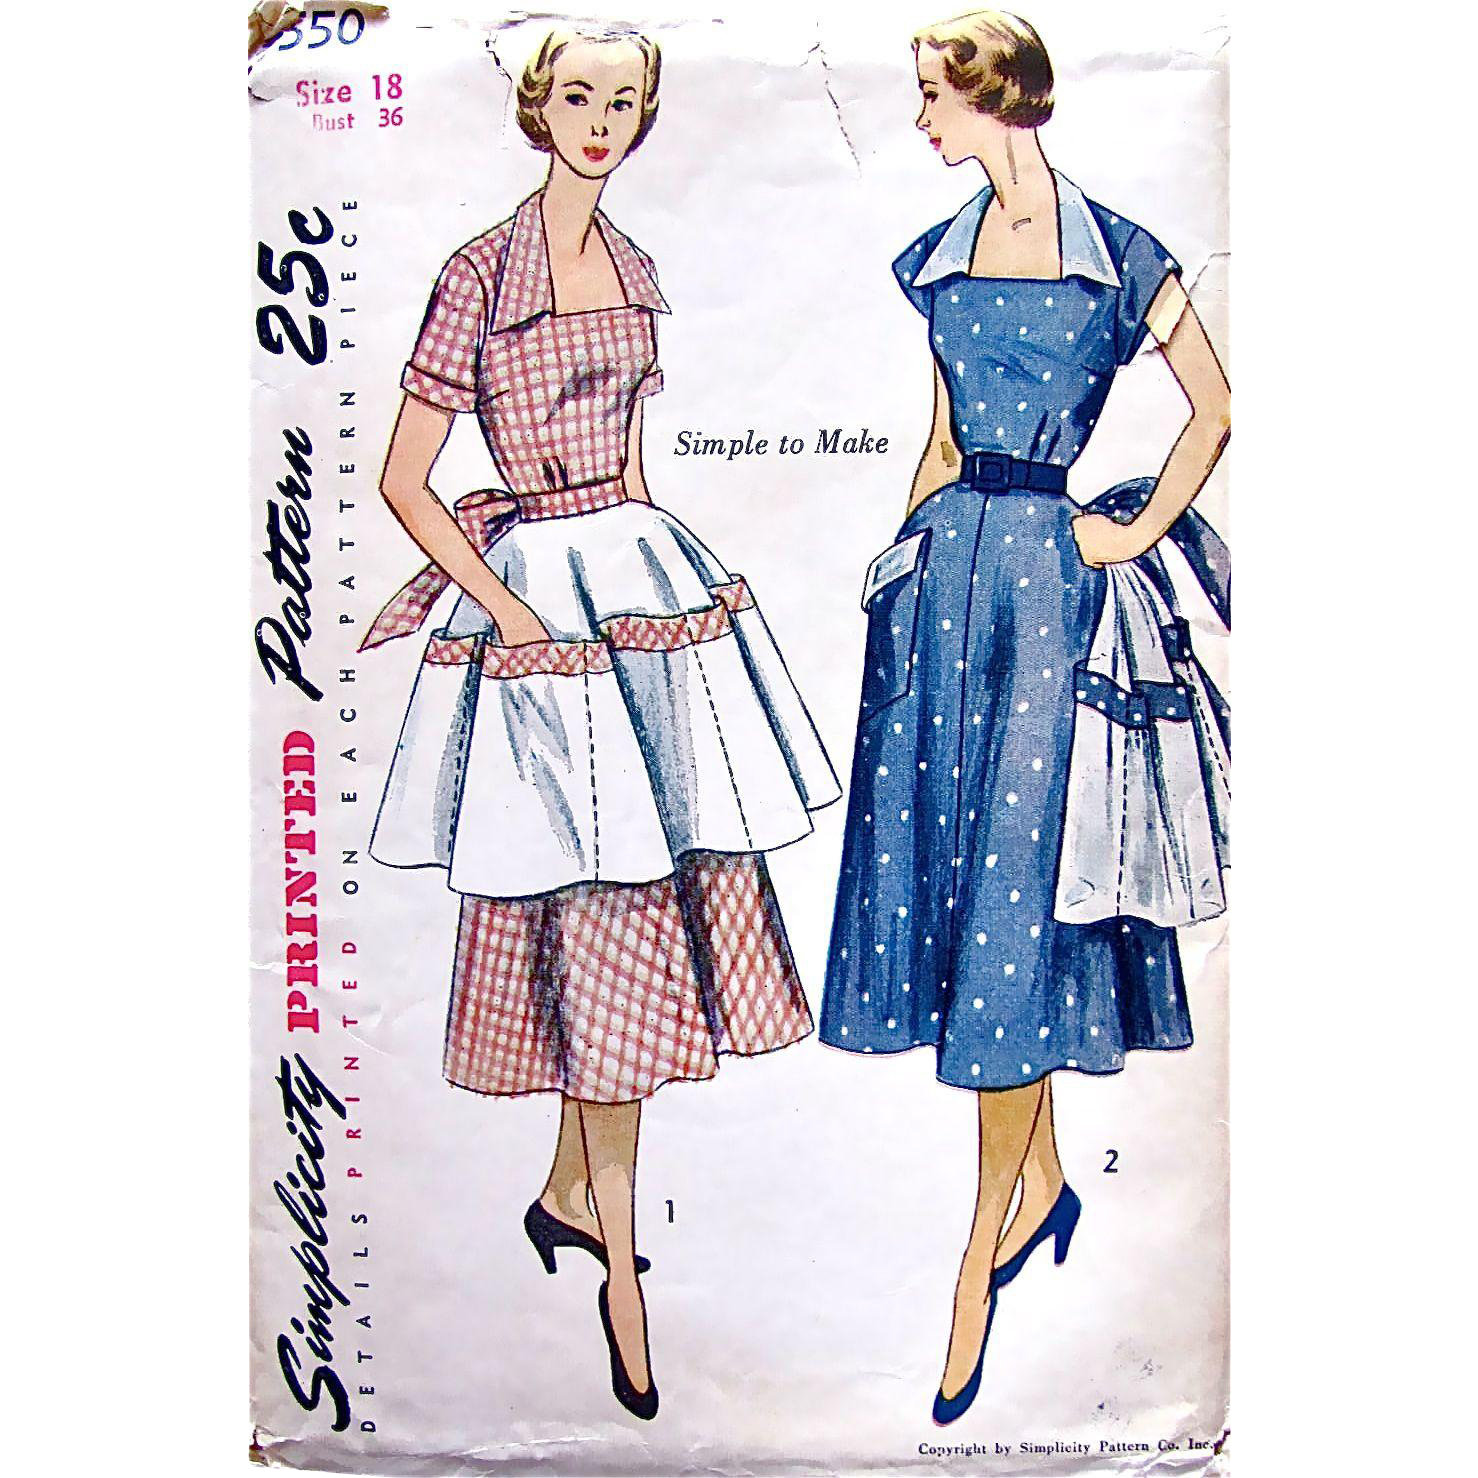 Womens Dress and Apron Pattern Simplicity 3550 Uncut Factory Folded Vintage 1950s Size 18 Bust 36 Inches